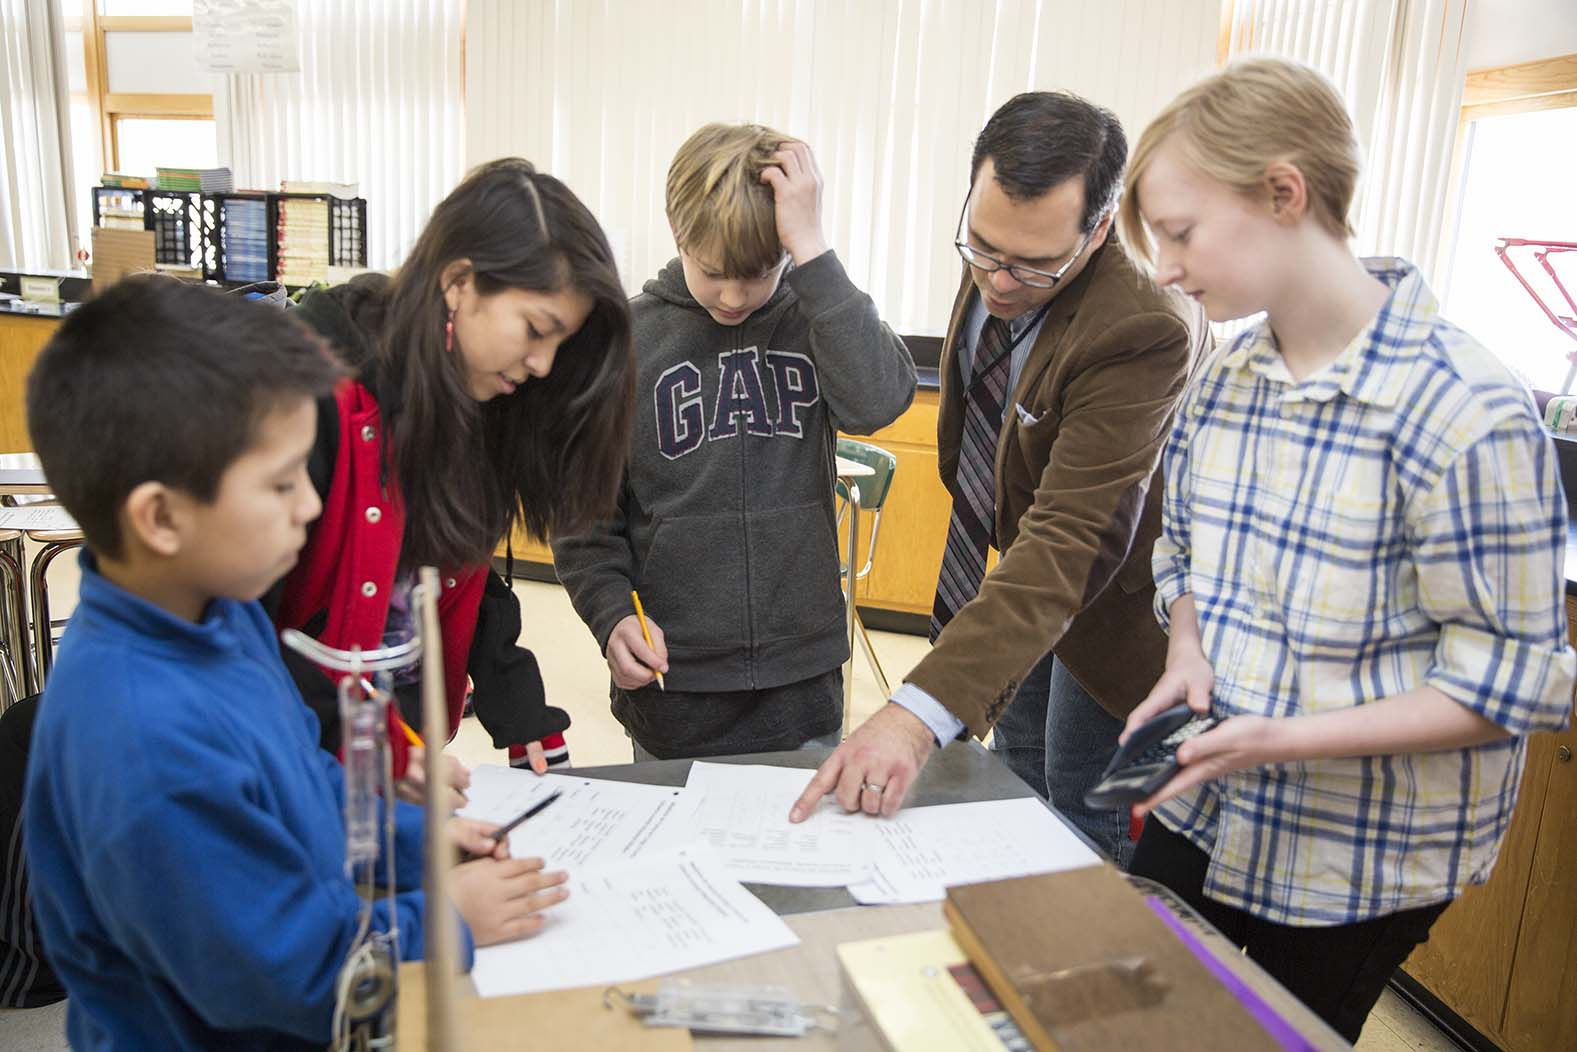 A science classroom experiment with four students and a teacher looking a written data.